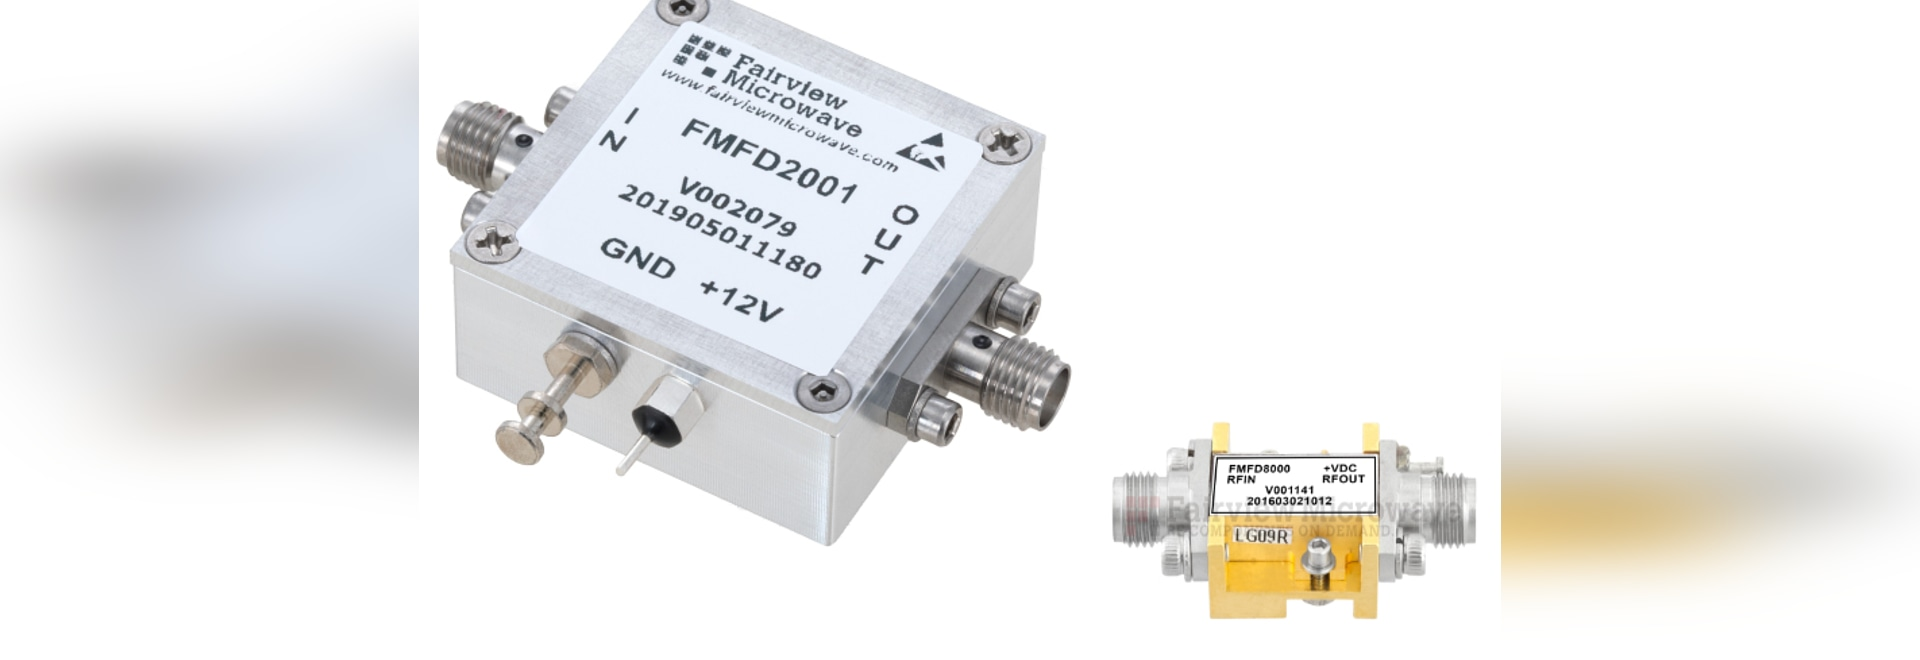 Frequency dividers in compact, rugged SMA connectorized packages work to 20 GHz